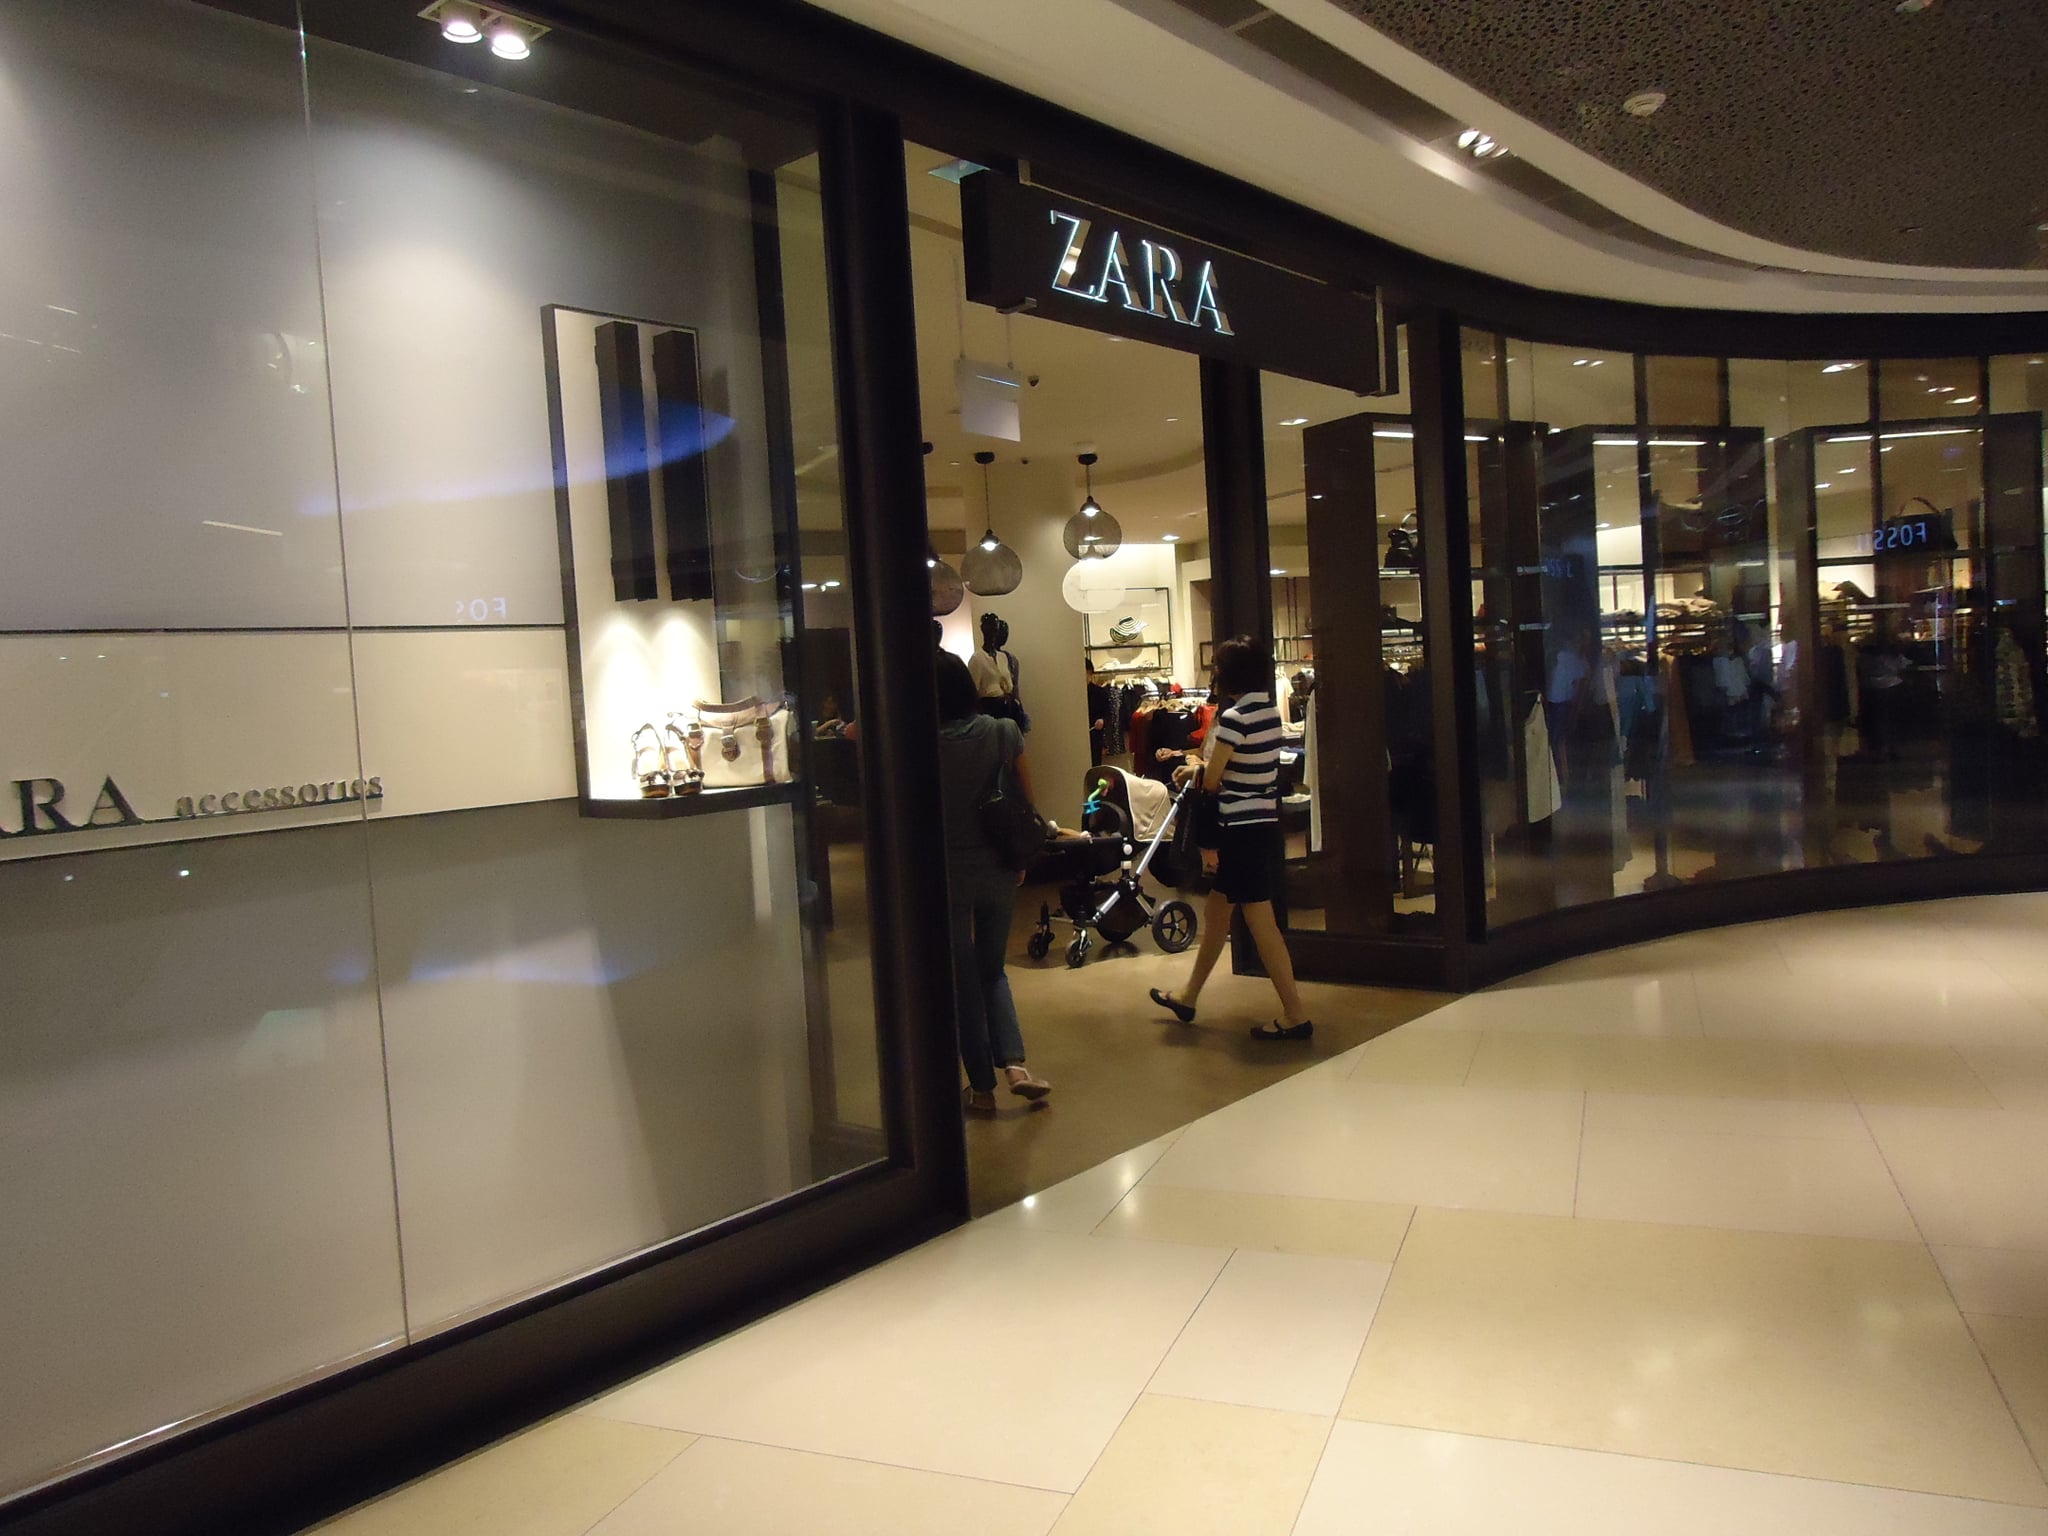 Hardest to walk out of? Zara, without doubt.